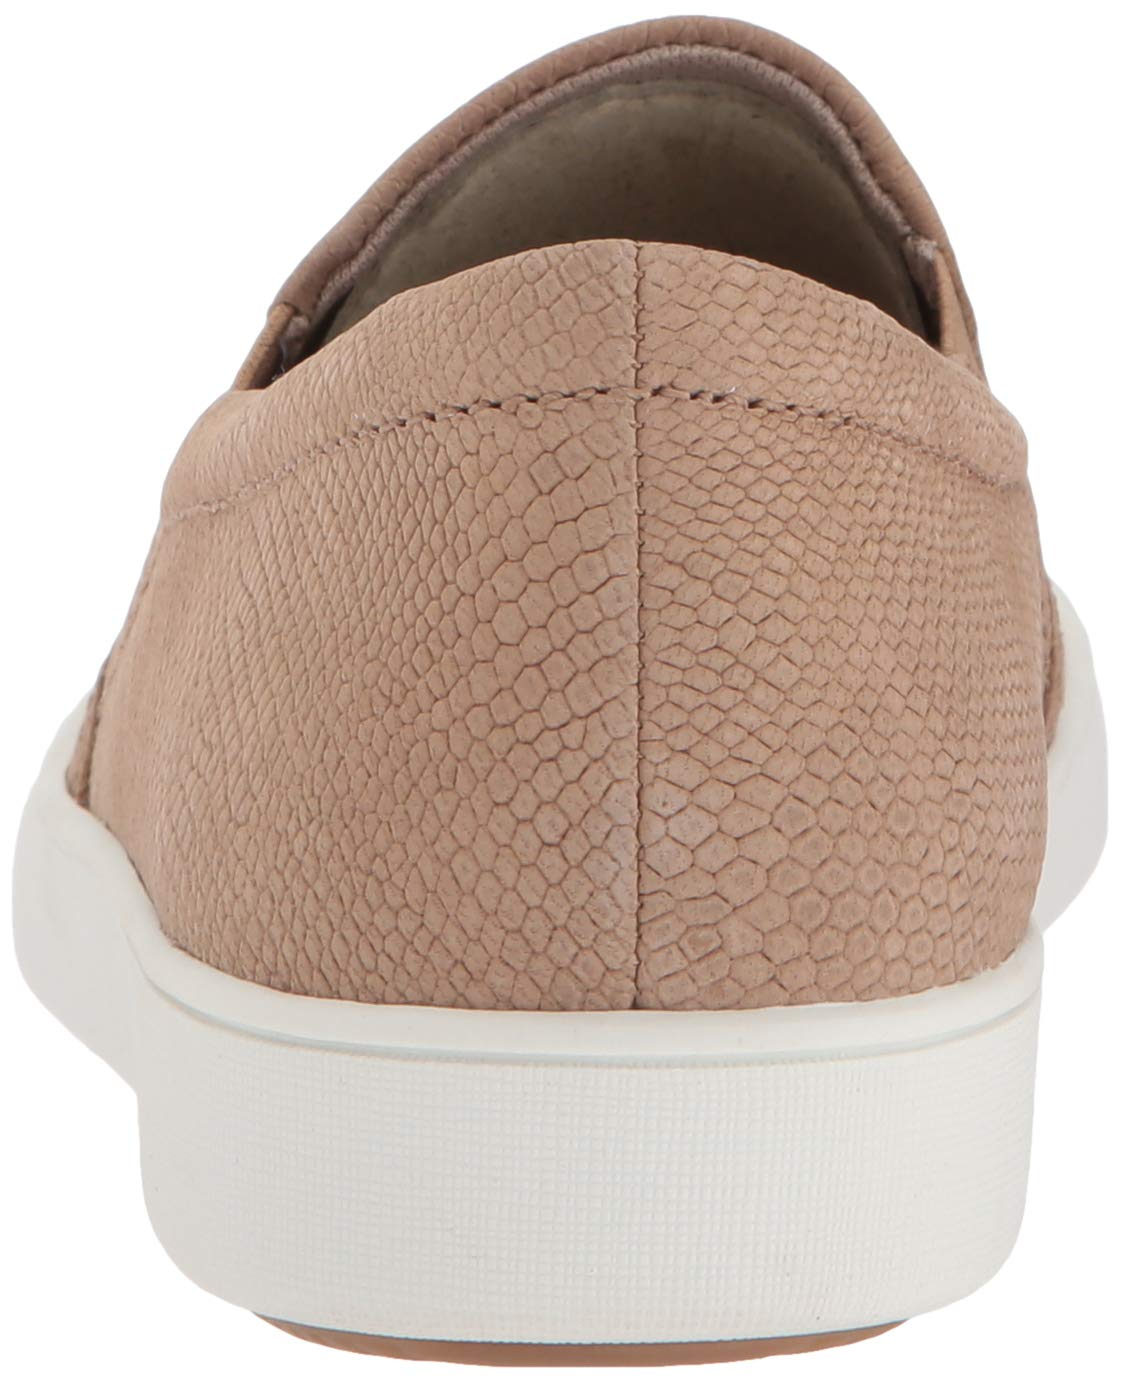 Naturalizer Women's Marianne Sneaker, Tan, 8.5